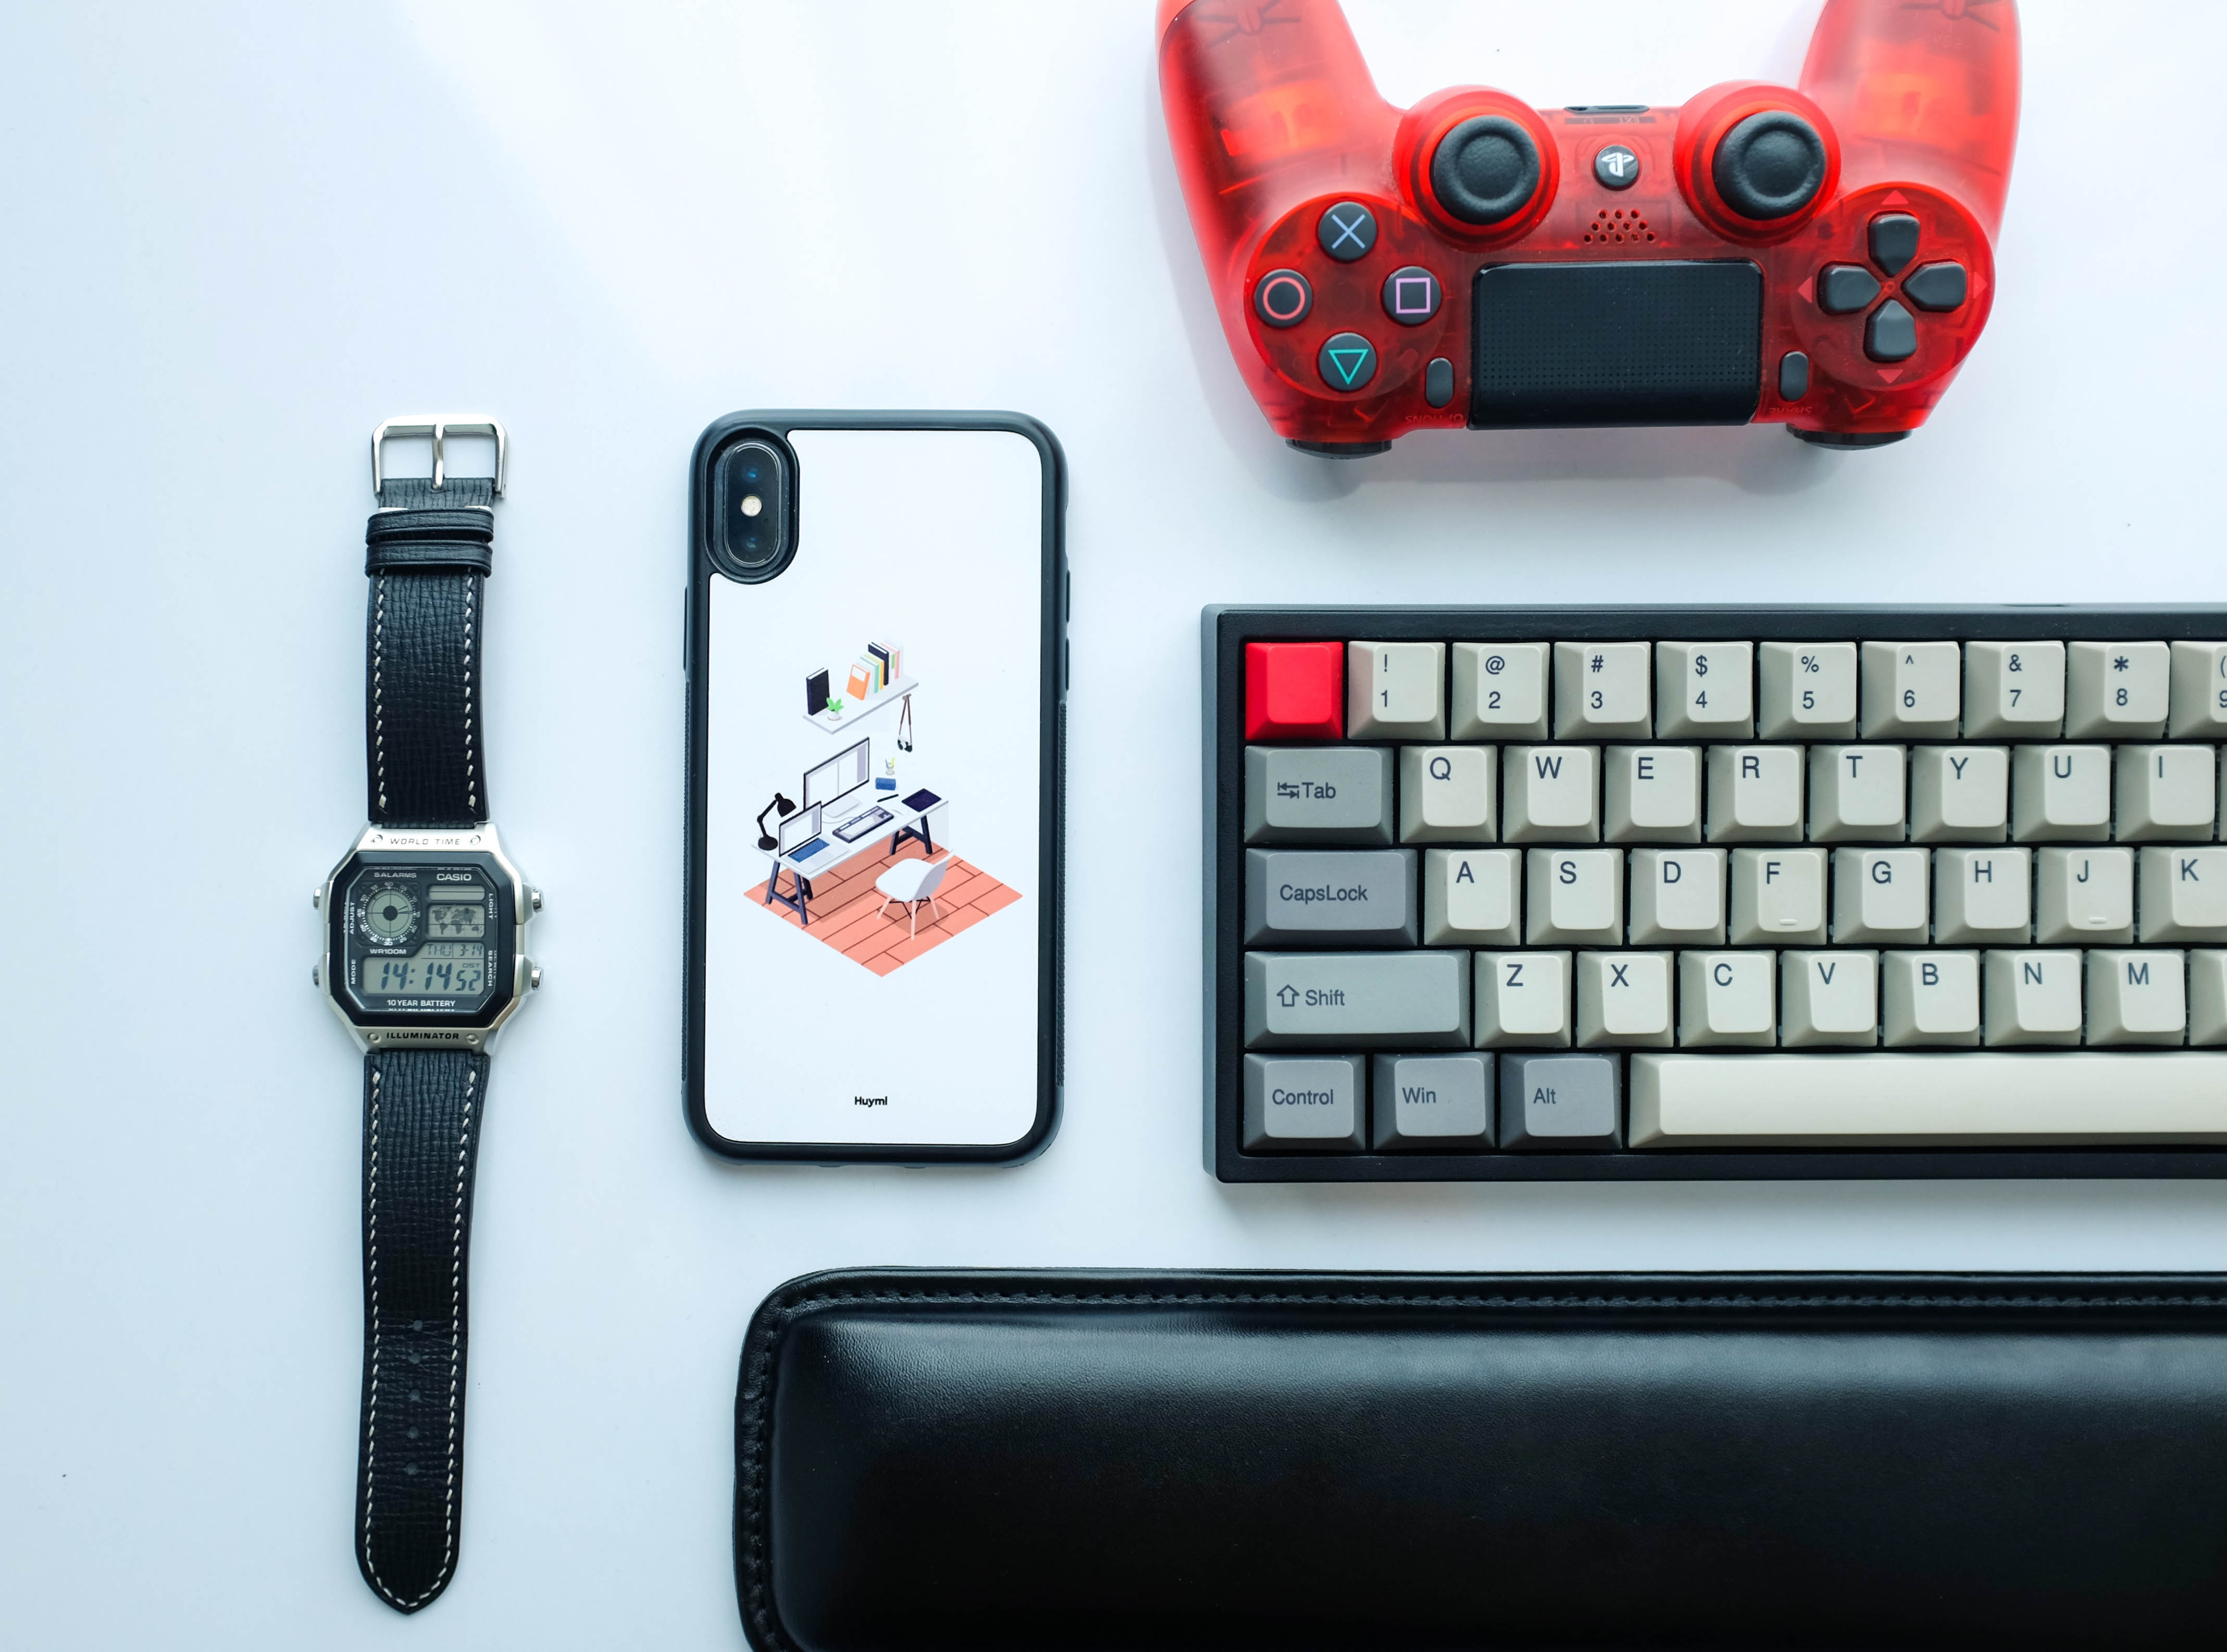 white and black iPhone X case beside silver-colored digital watch